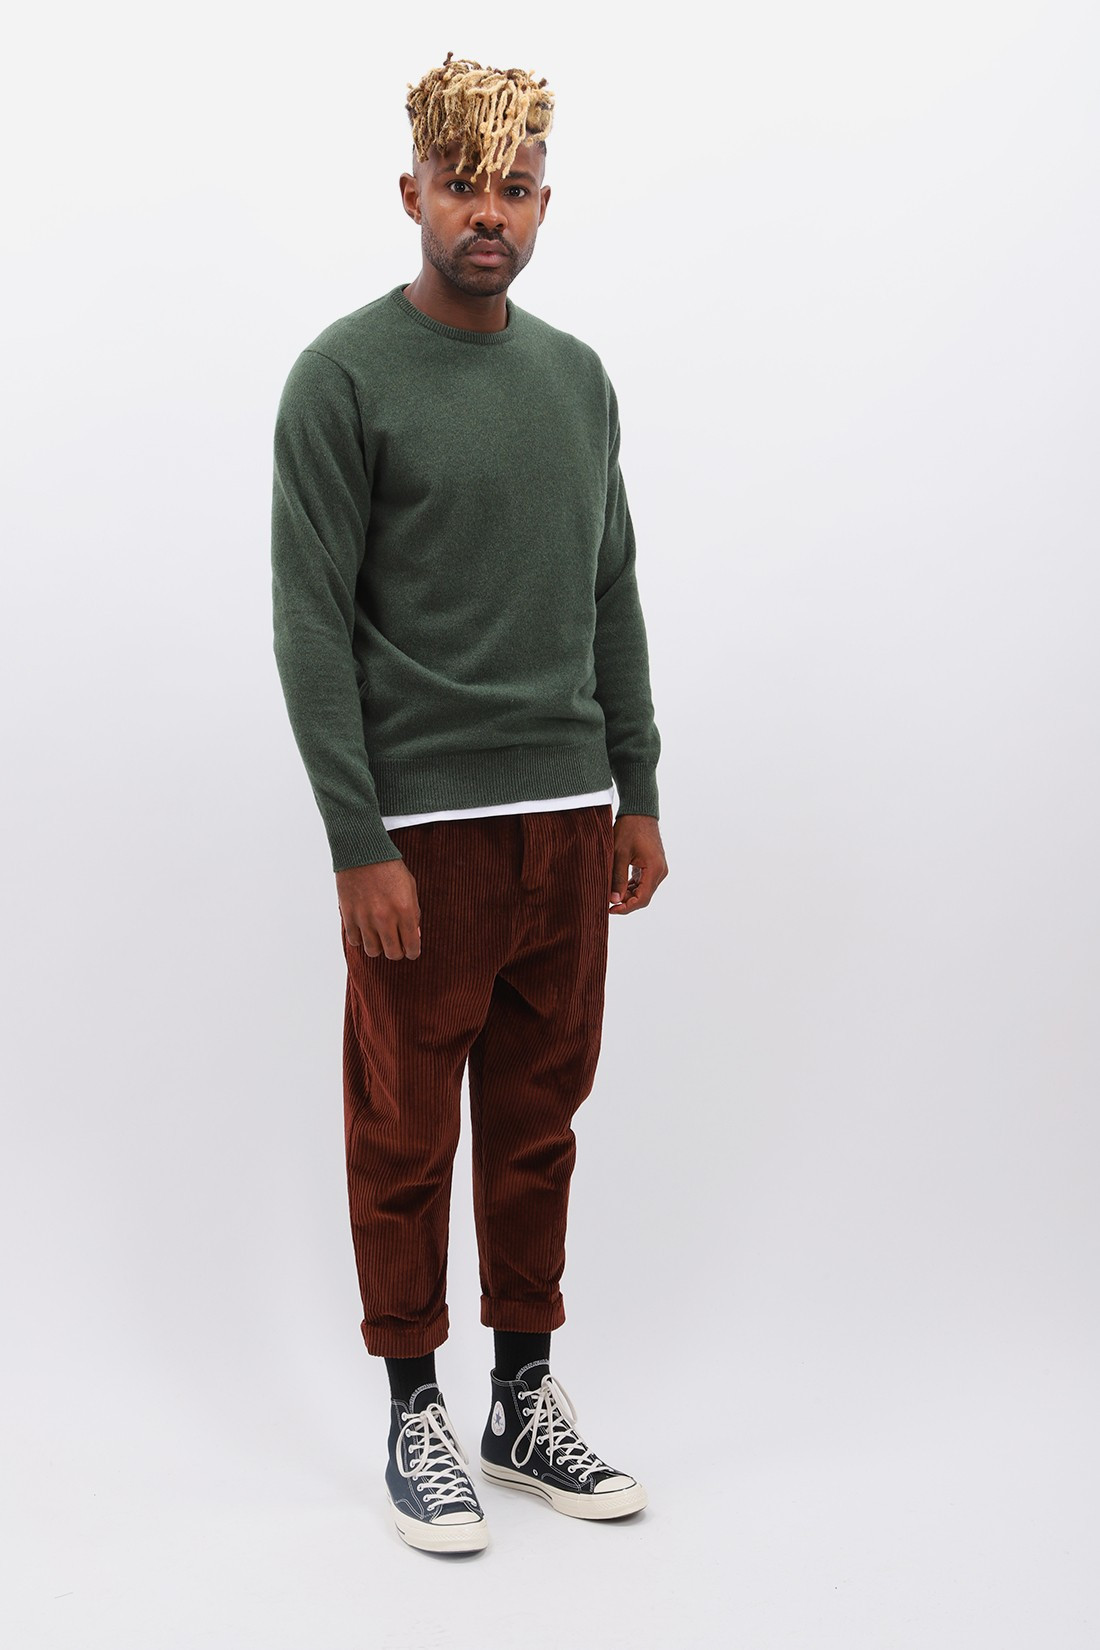 WILLIAM LOCKIE / Lambswool jumper crew neck Rosemary